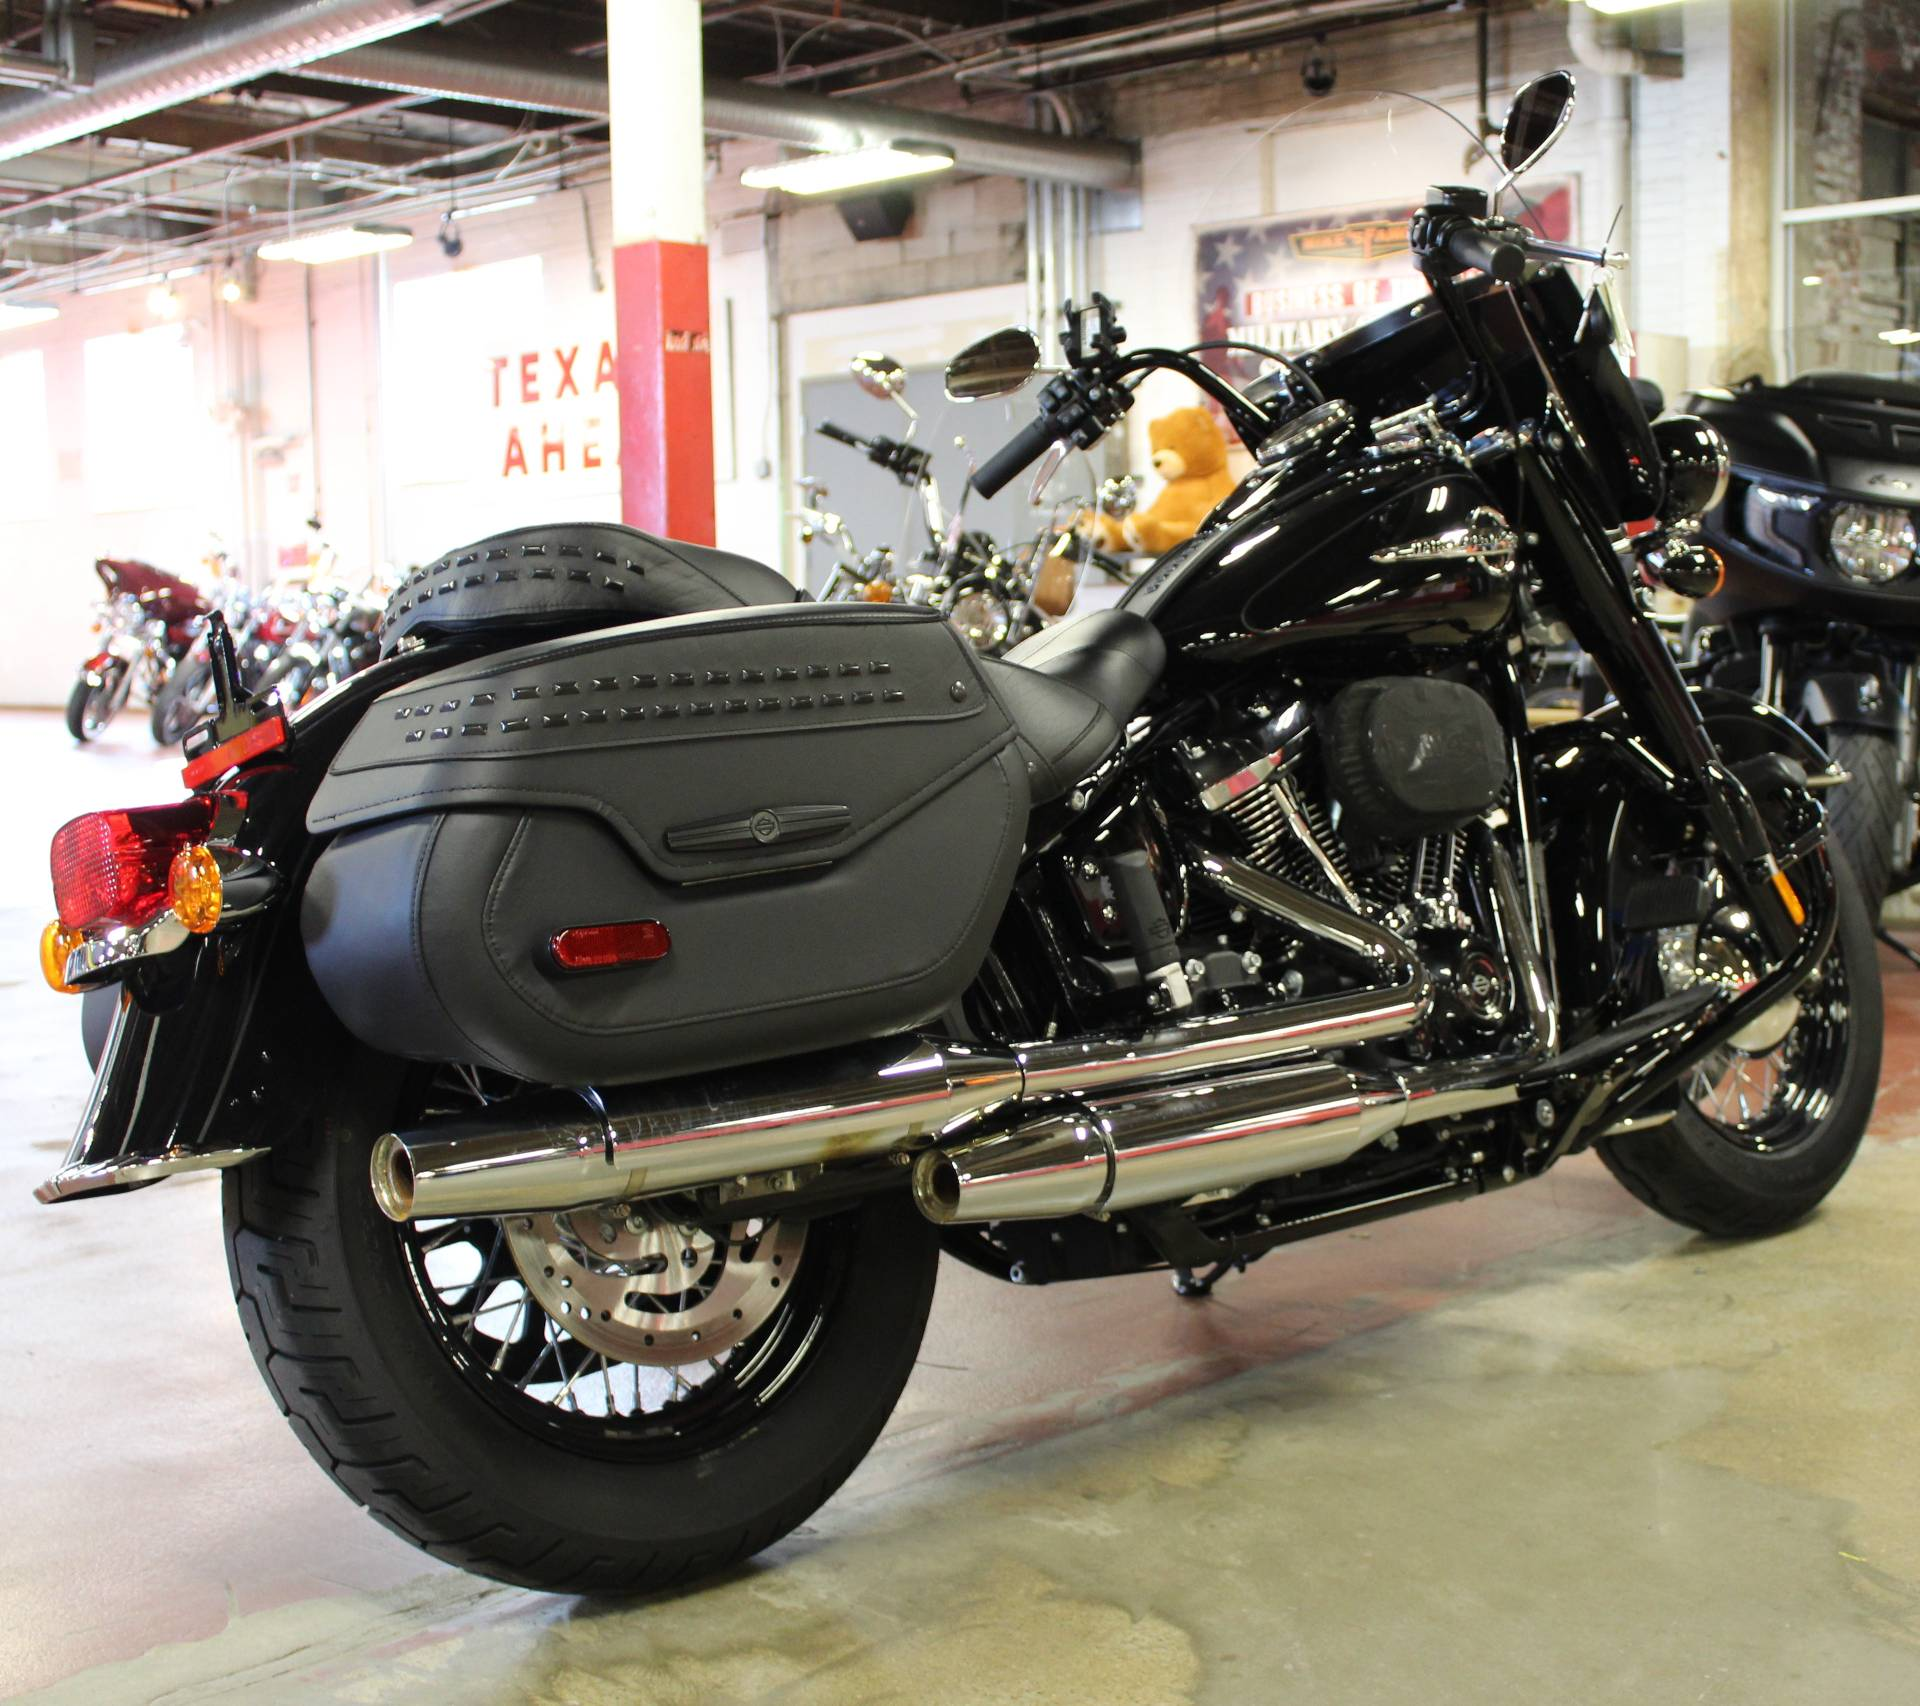 2019 Harley-Davidson Heritage Classic 114 in New London, Connecticut - Photo 8